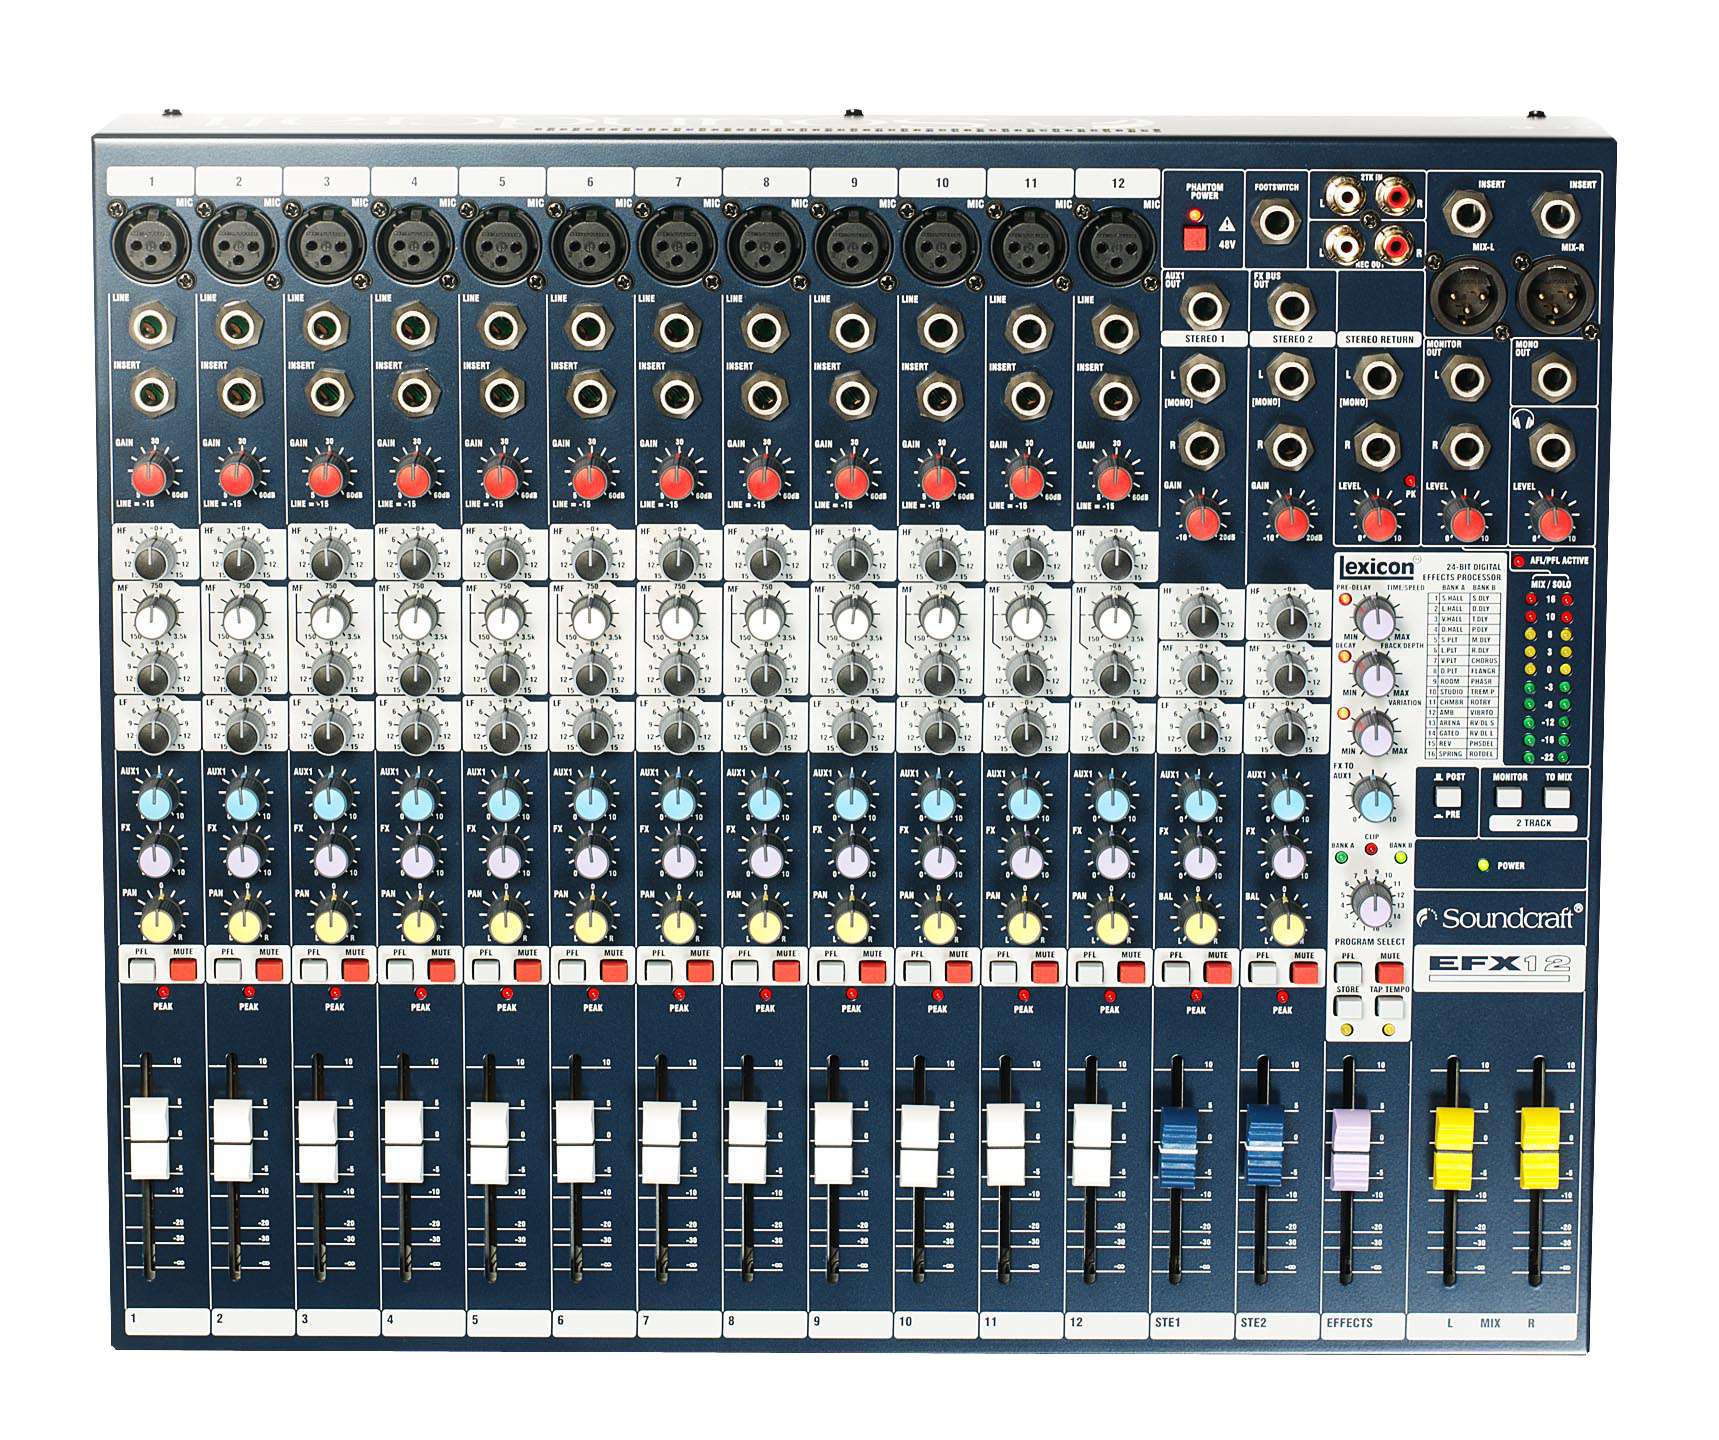 Efx12 Soundcraft Professional Audio Mixers Live Pa Wiring Diagrams